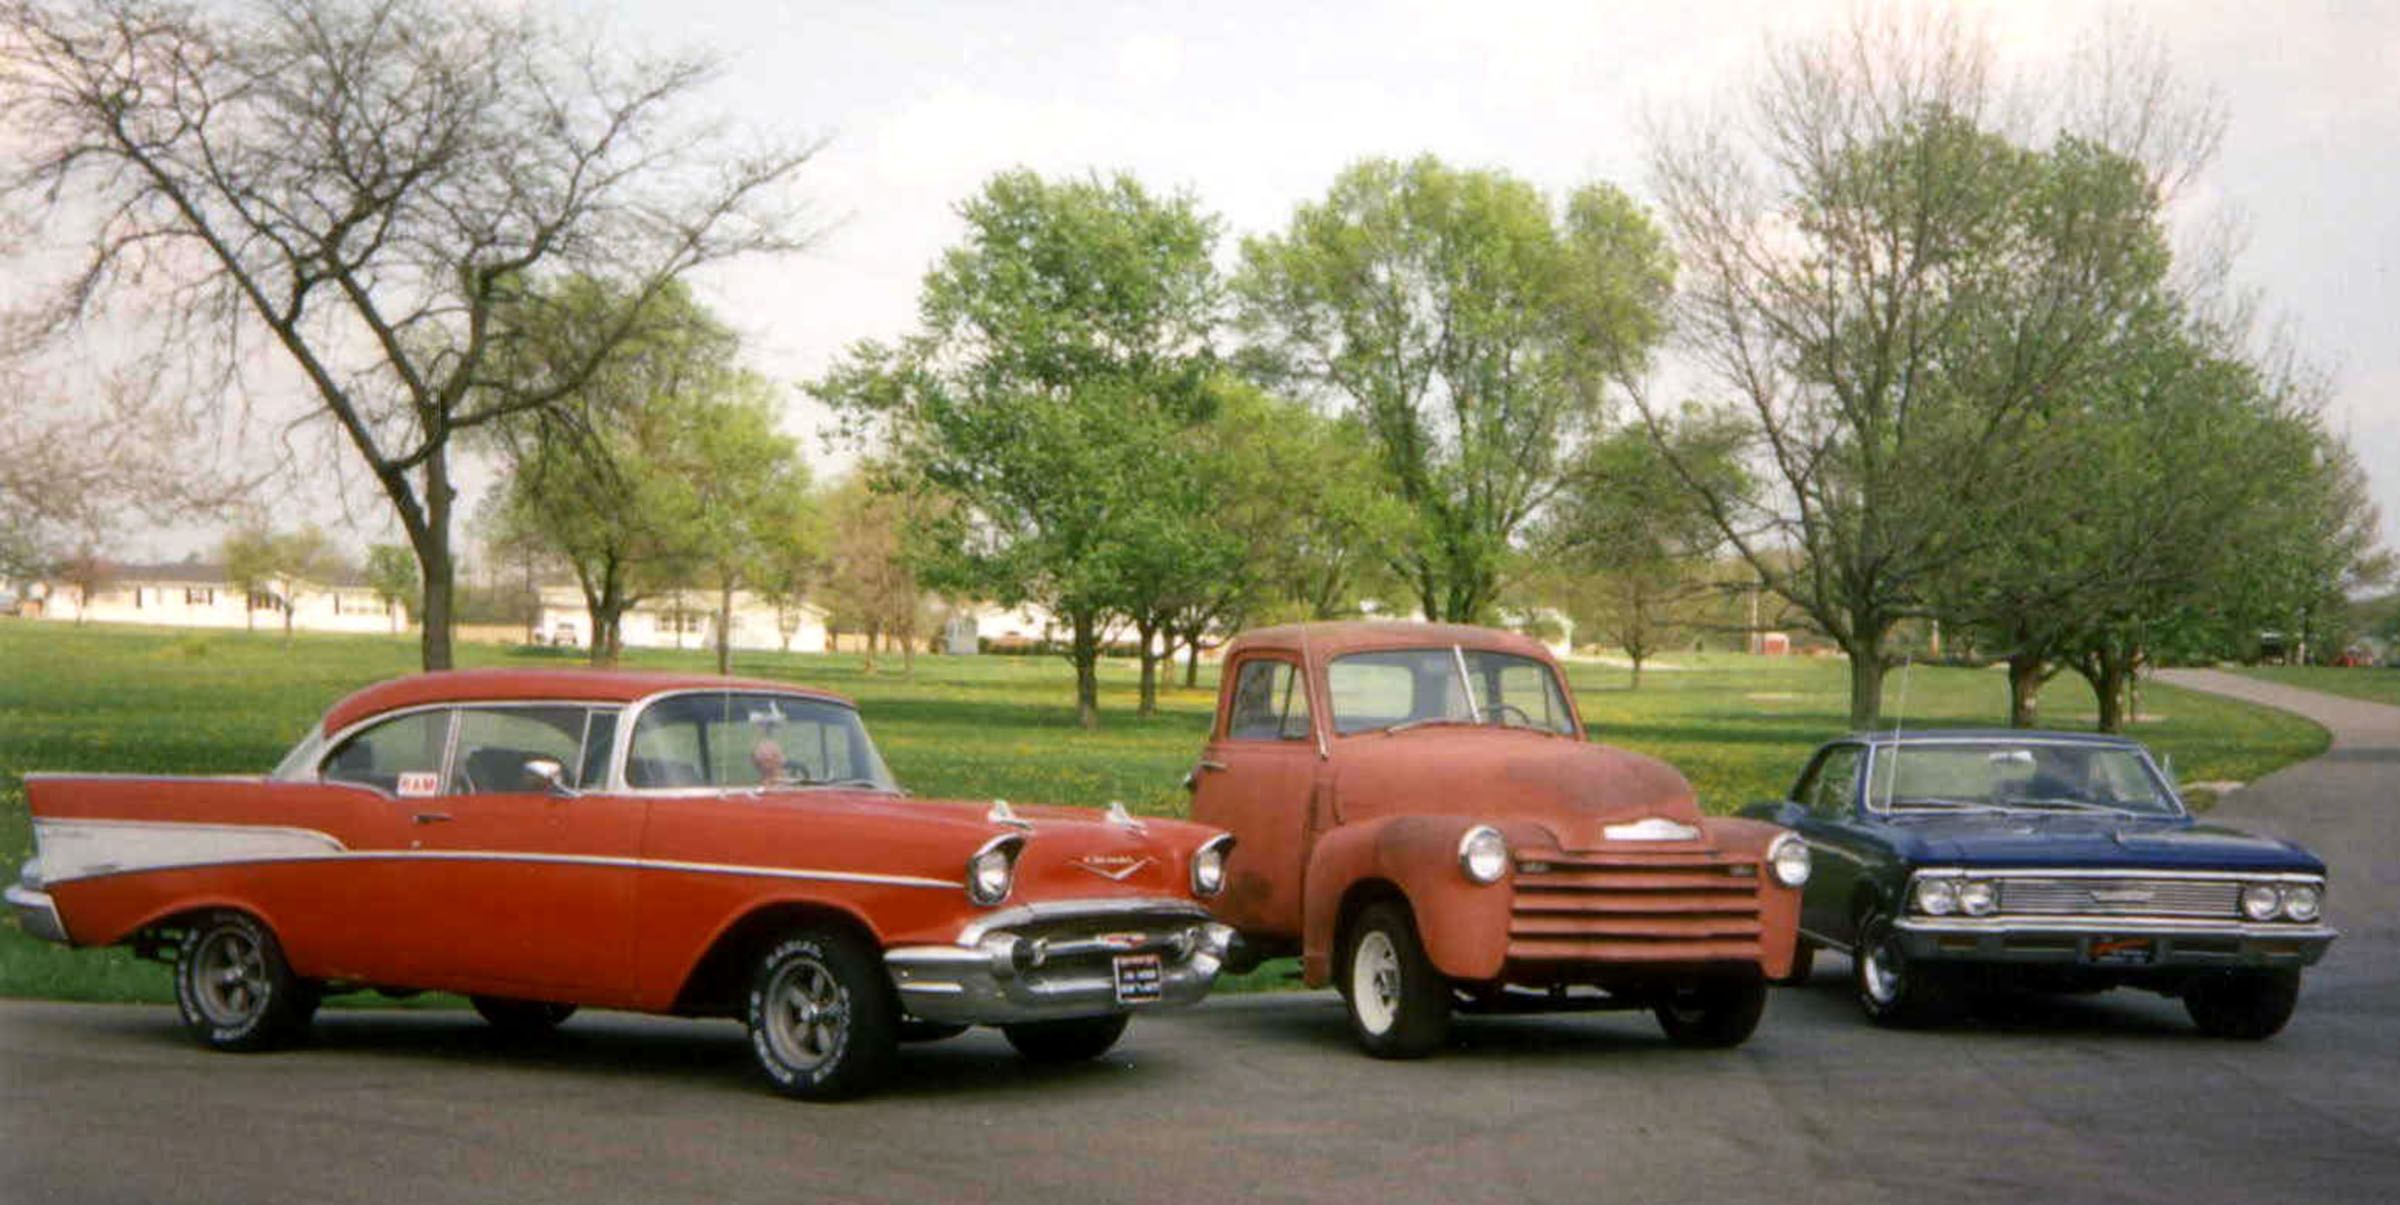 Original Crown City Cruiser Cars